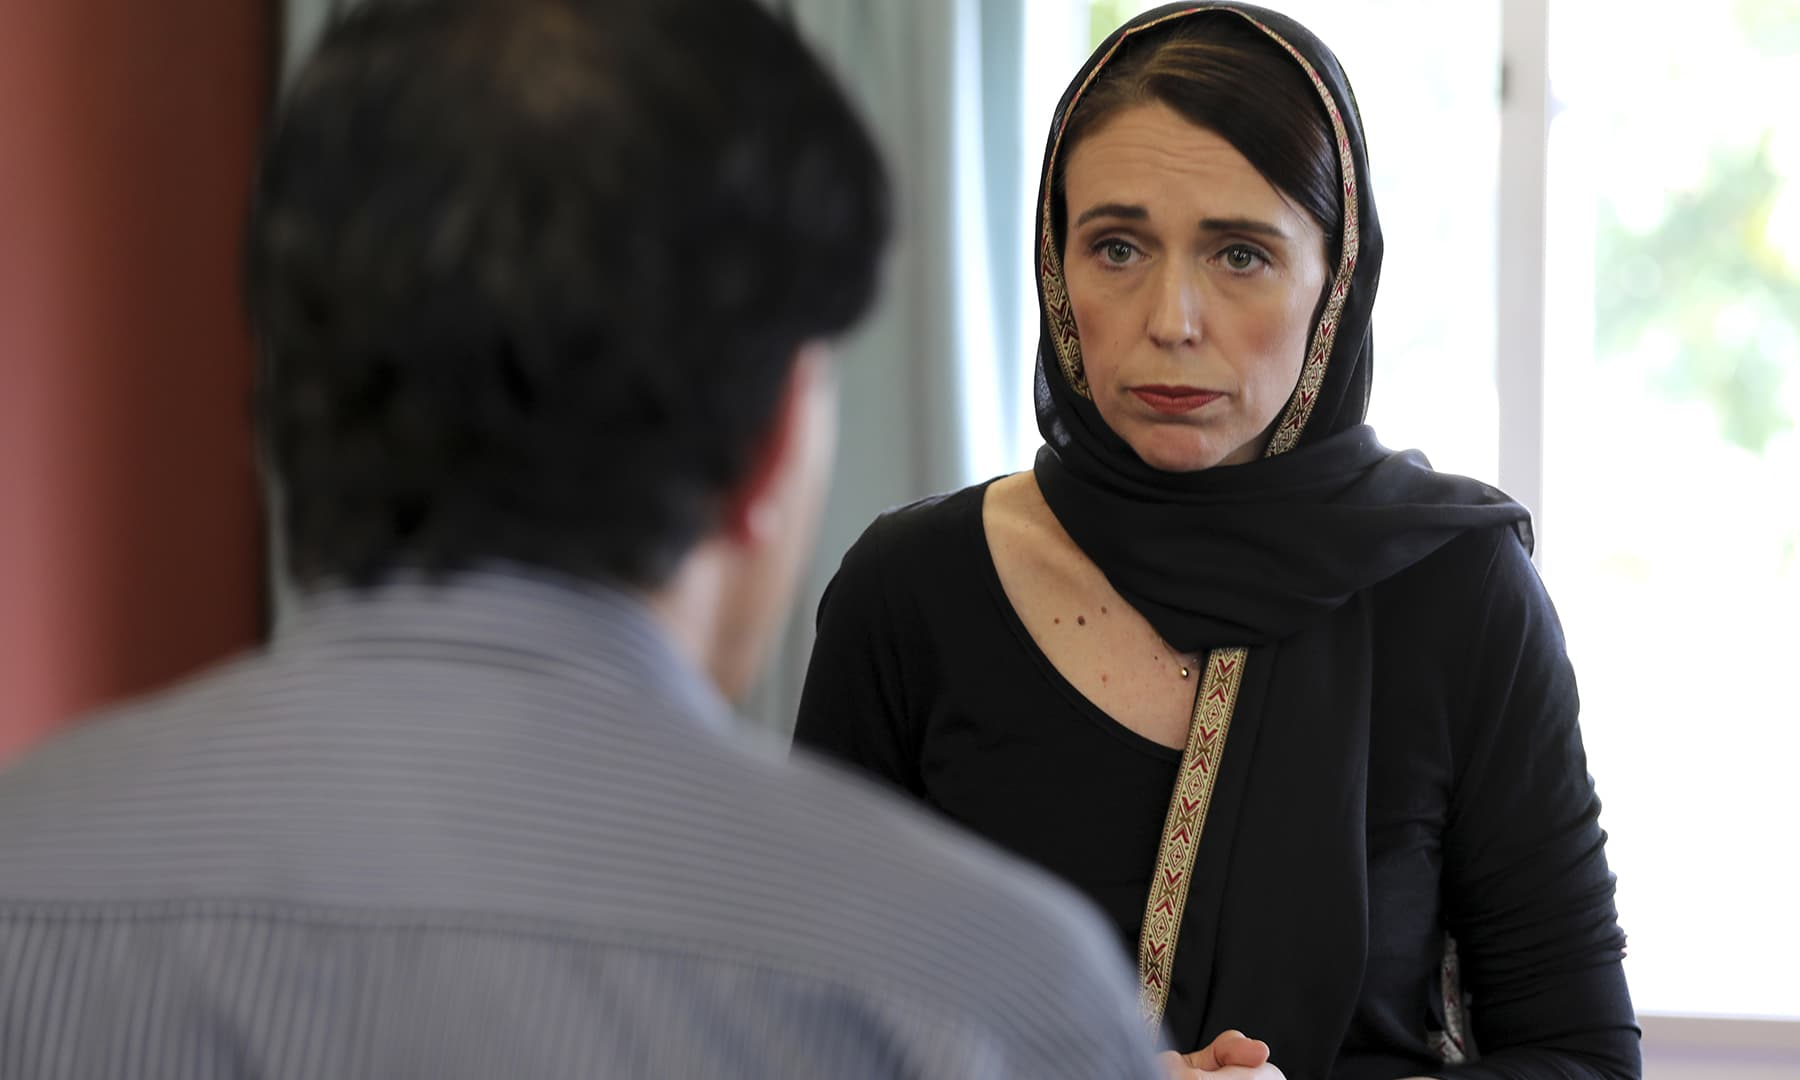 In this photo released by New Zealand Prime Minister's Office, Prime Minister Jacinda Ardern speaks to representatives of the Muslim community, Saturday, March 16, 2019 at the Canterbury Refugee Centre in Christchurch, New Zealand. — AP